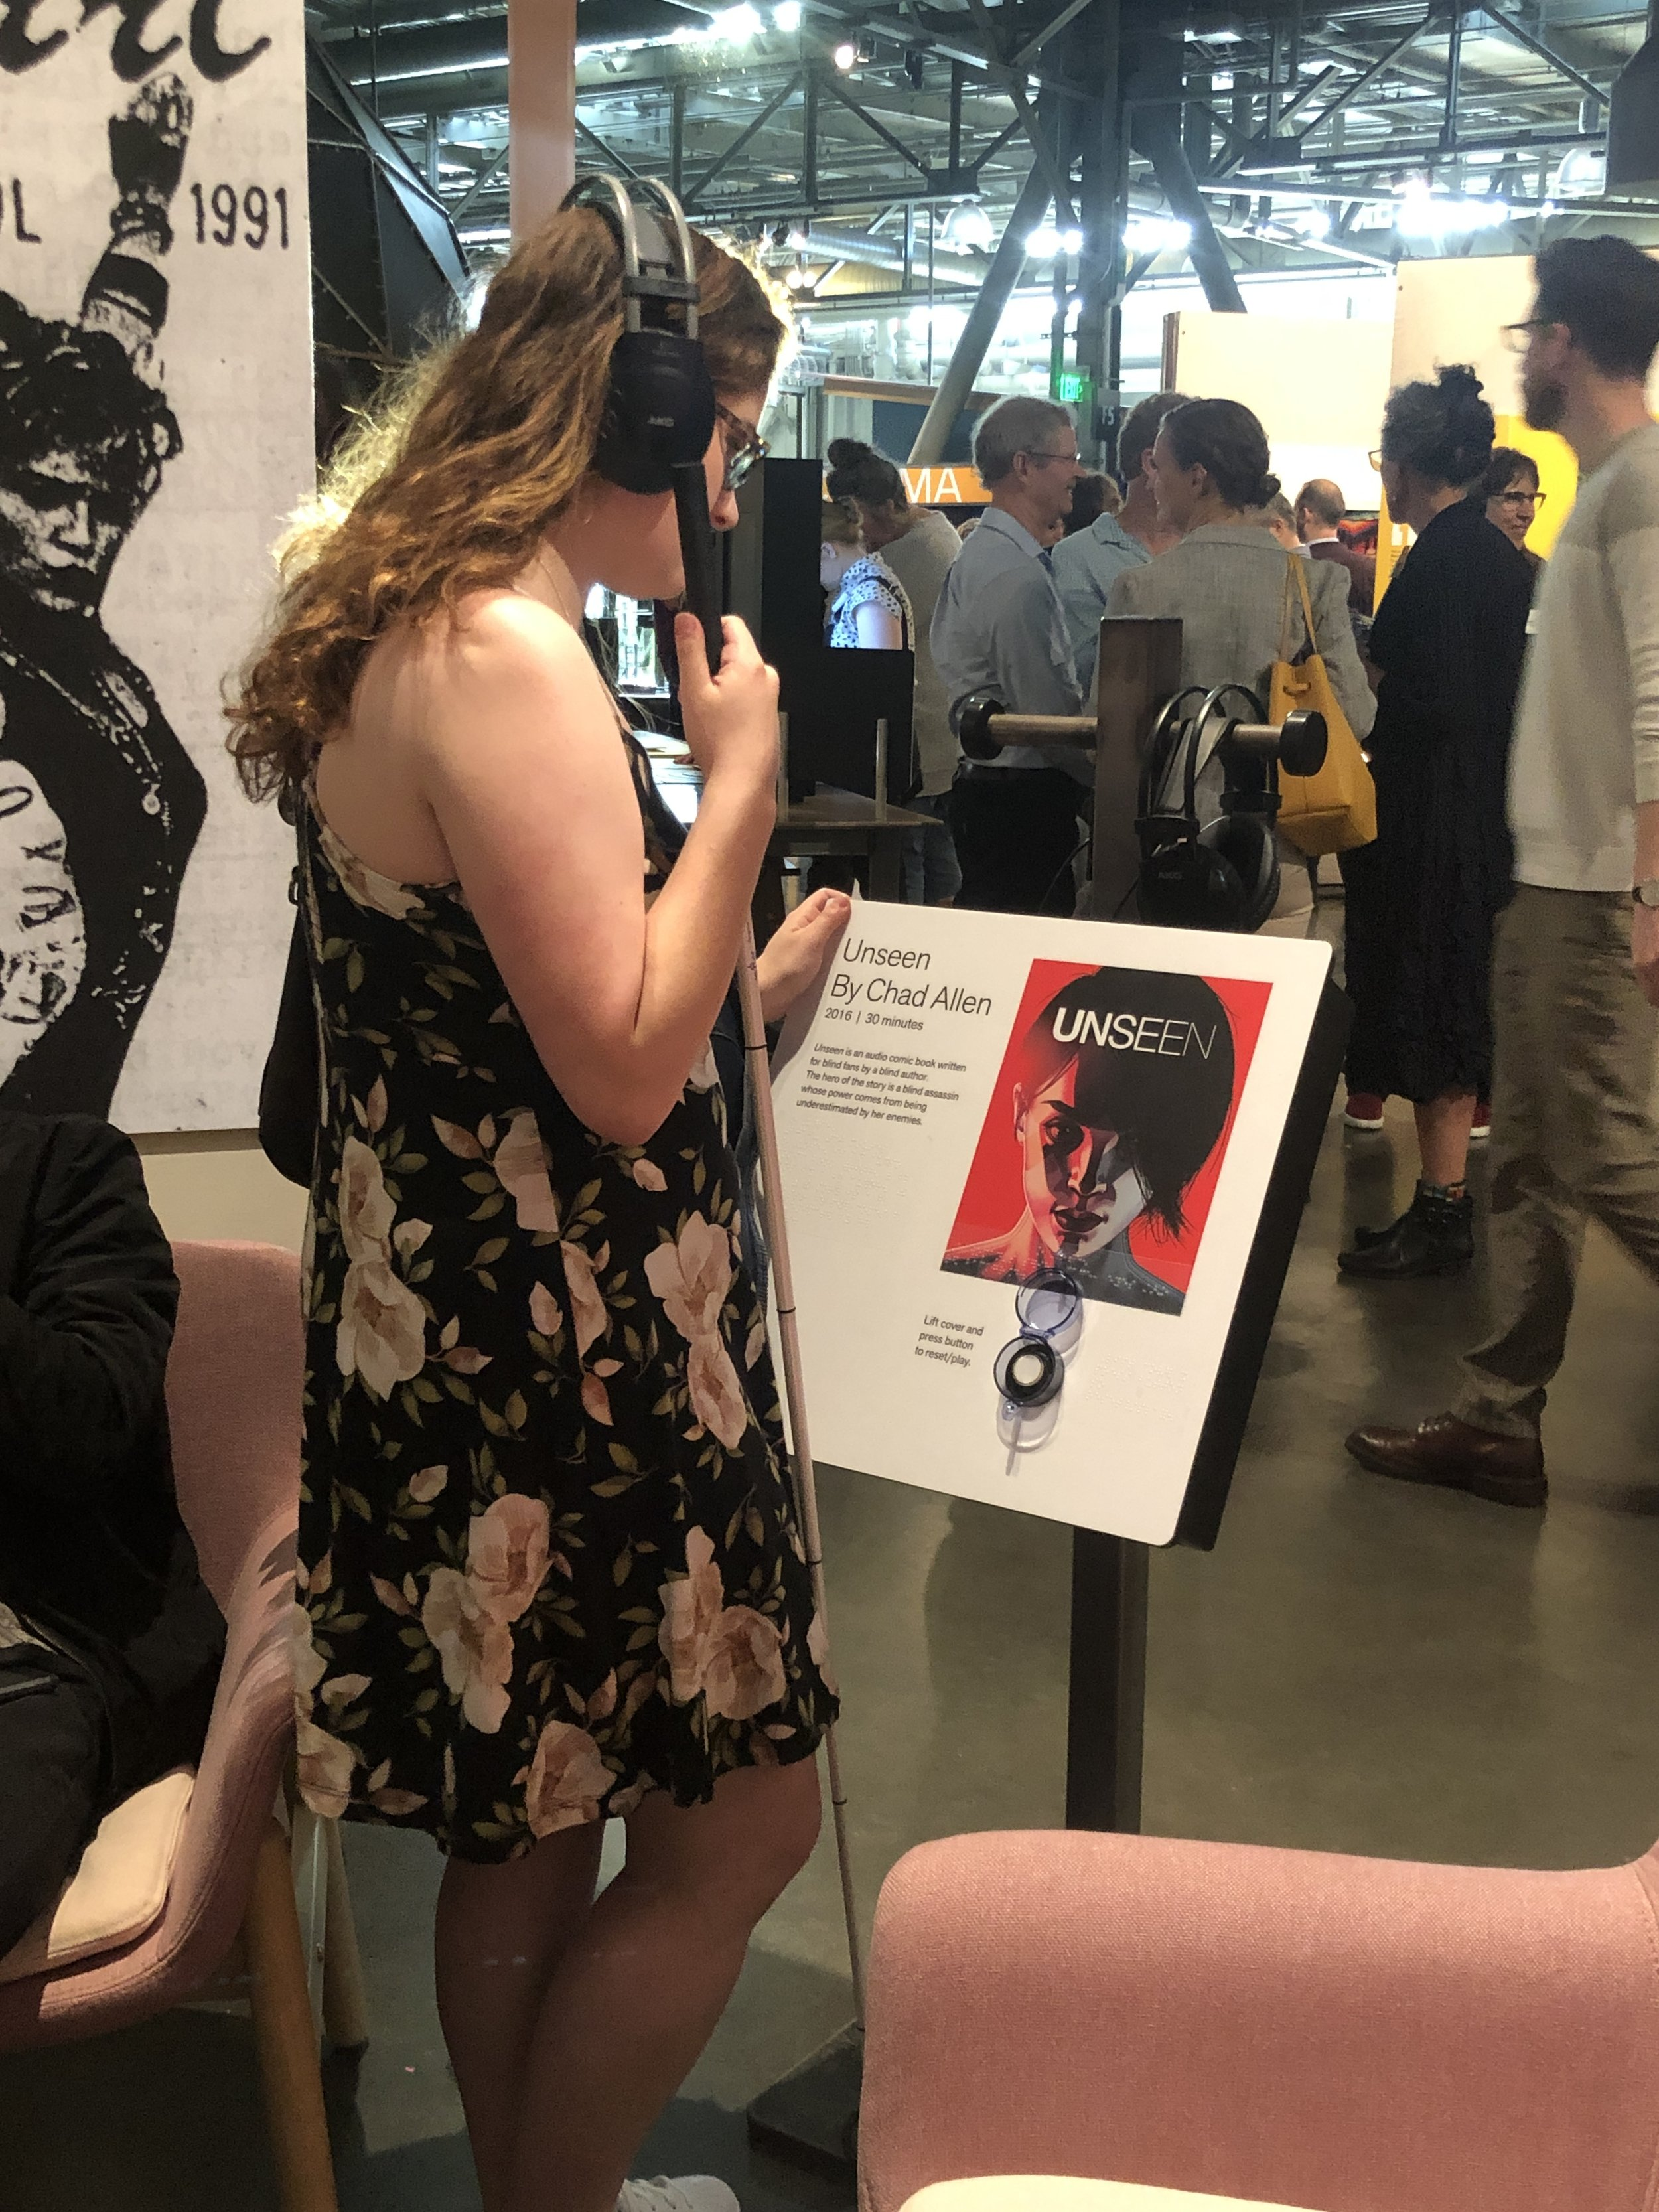 Lauren, a blind attendee listening to Unseen at the exhibit opening night